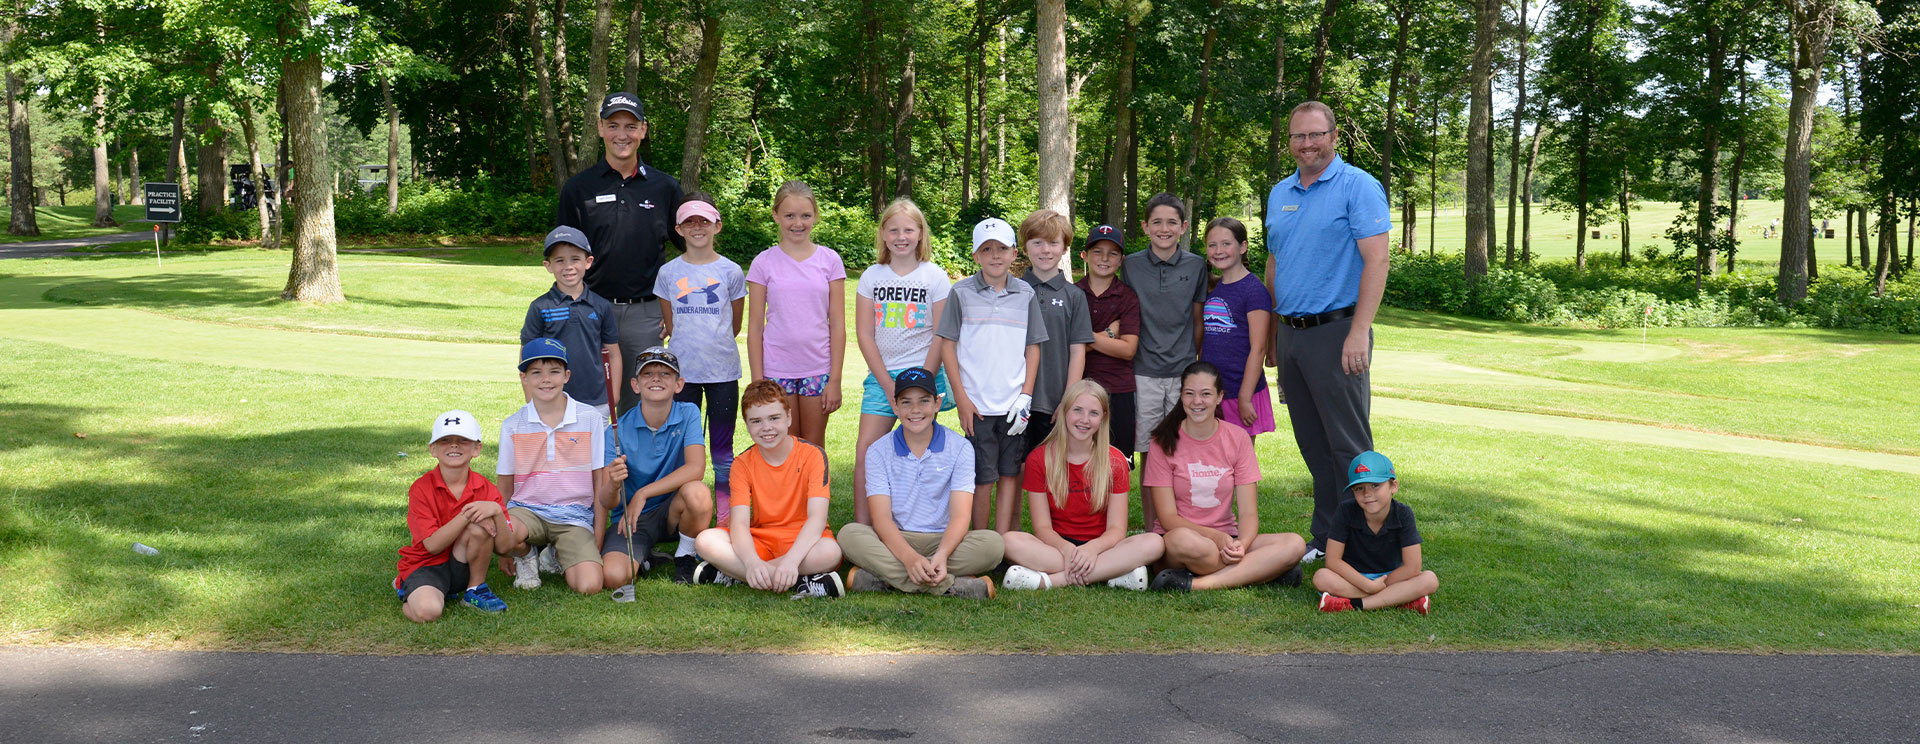 FAQs Answered: Fun facts about beginner's and junior golf programs